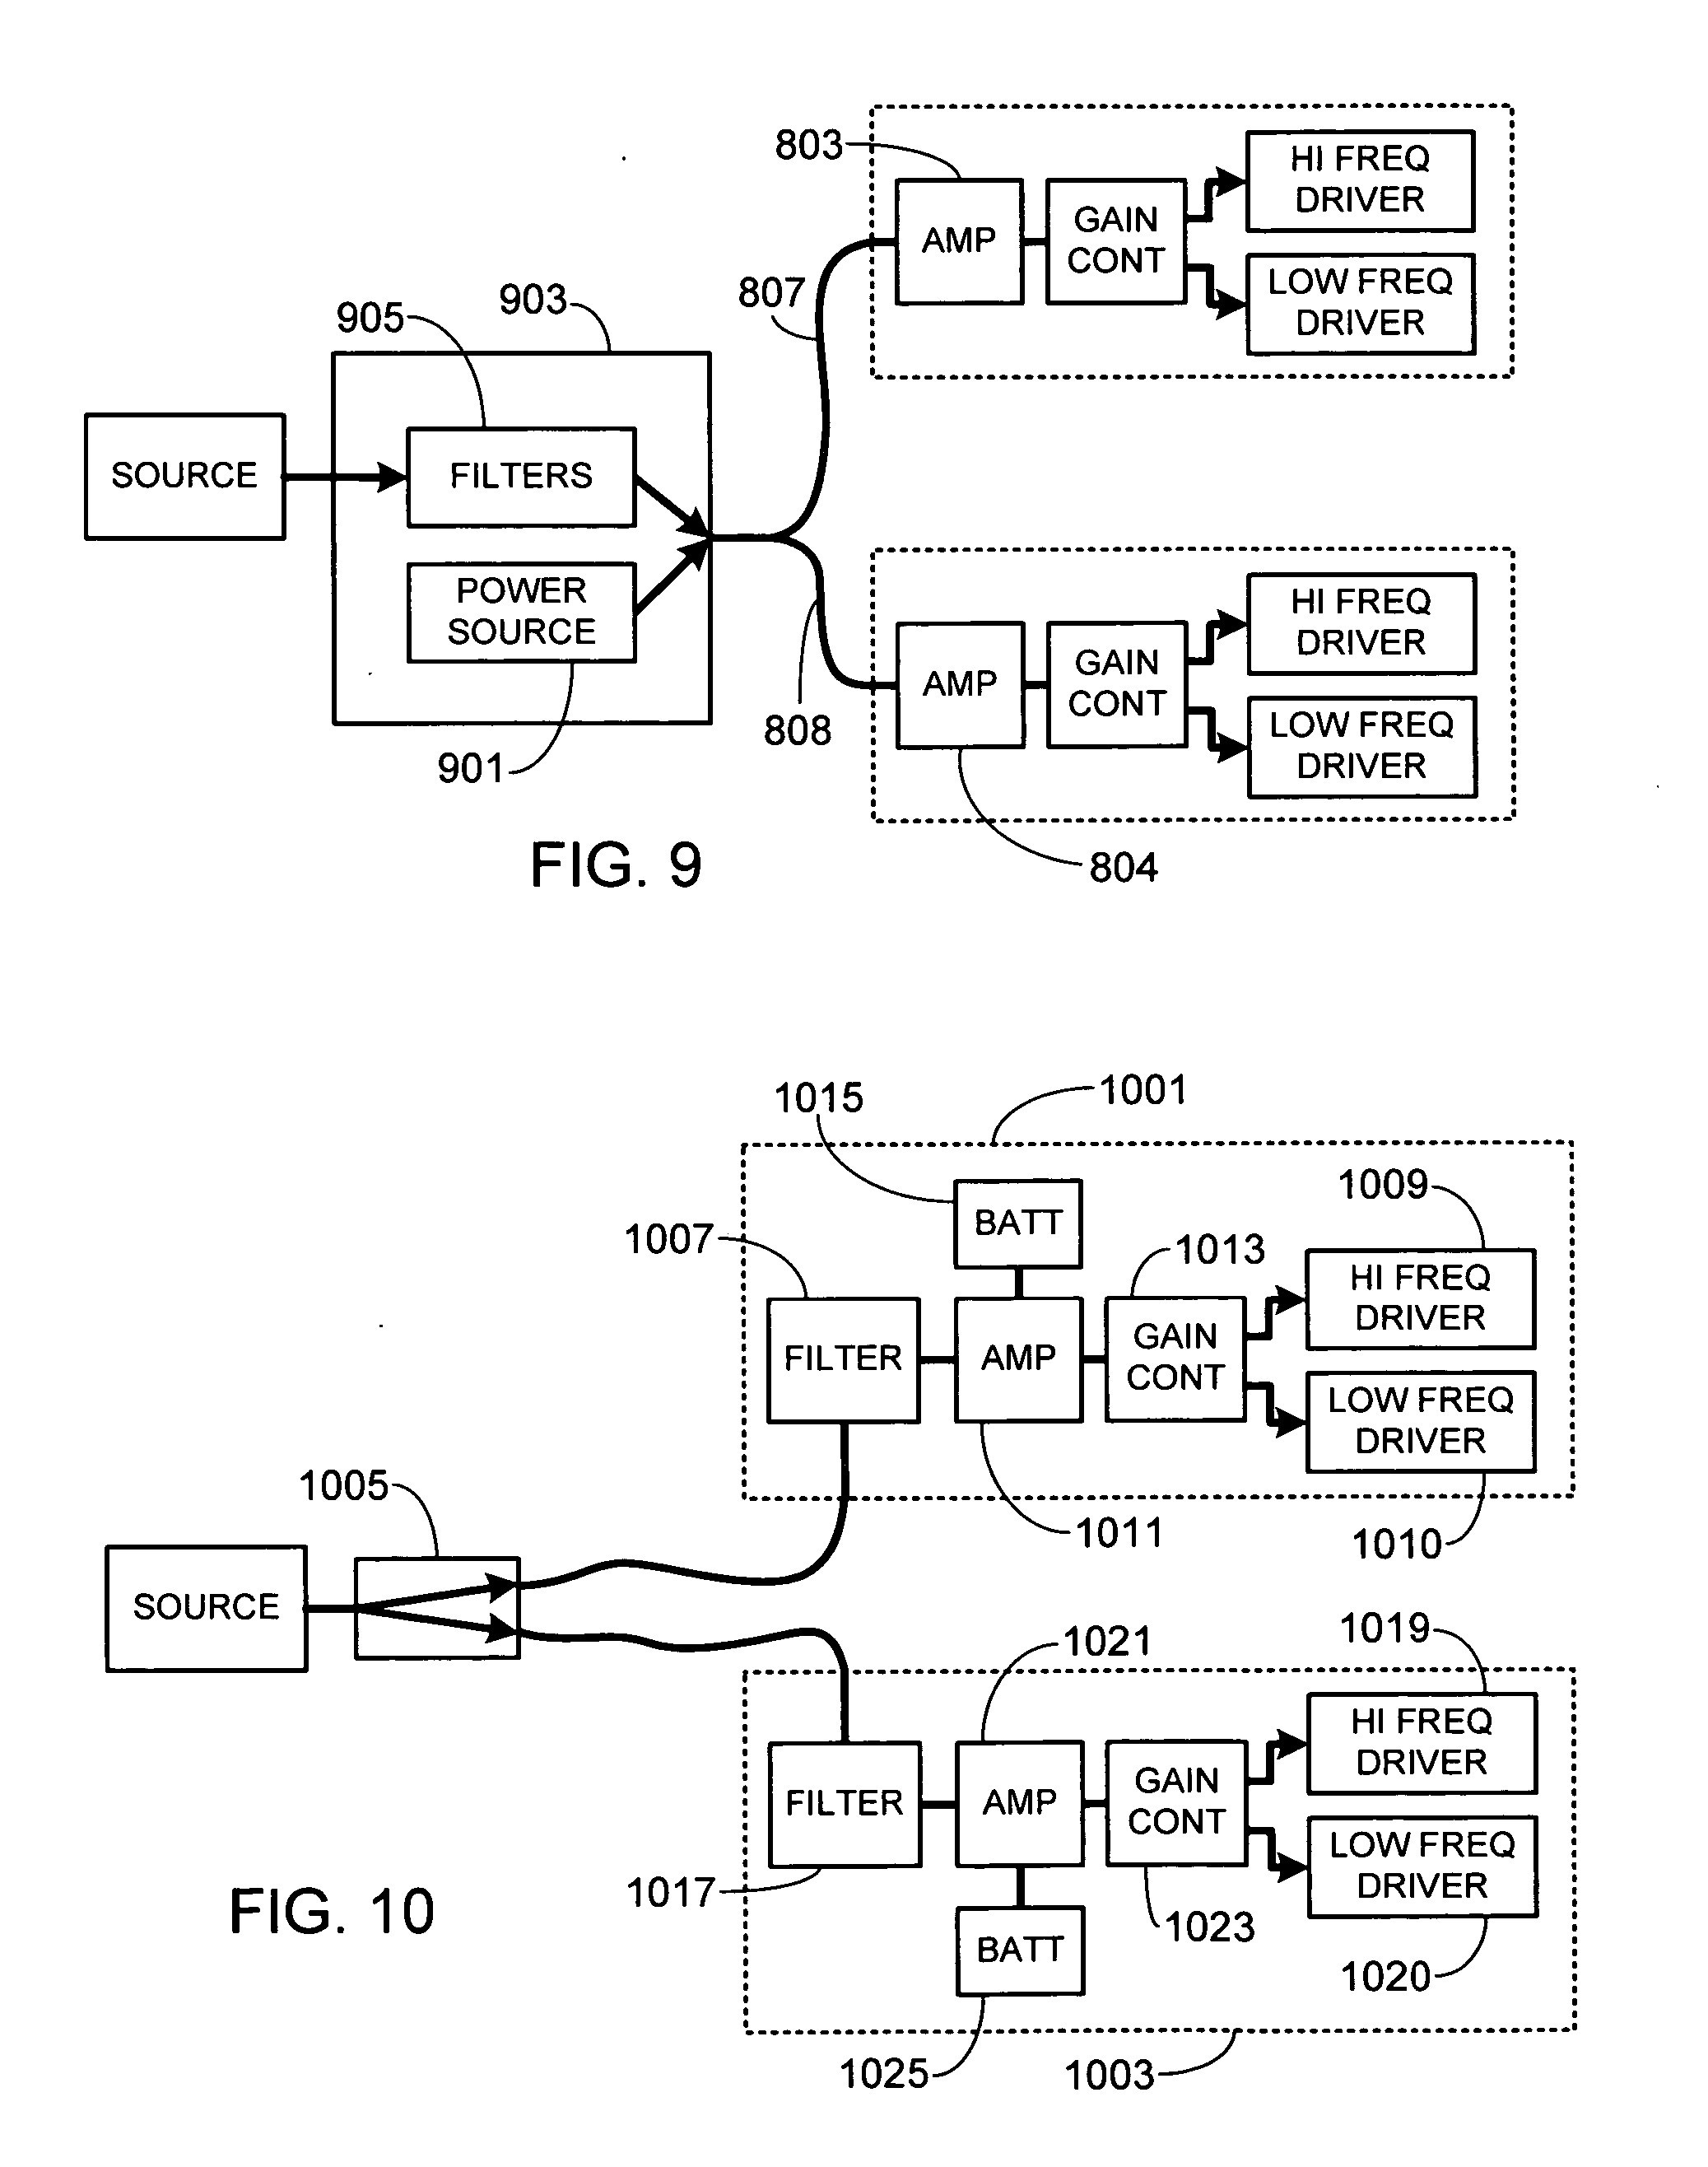 Circuit Breaker Wiring Diagram New Image Active Crossover Schematic Patent Us For Use With Multi Driver Drawing Basics